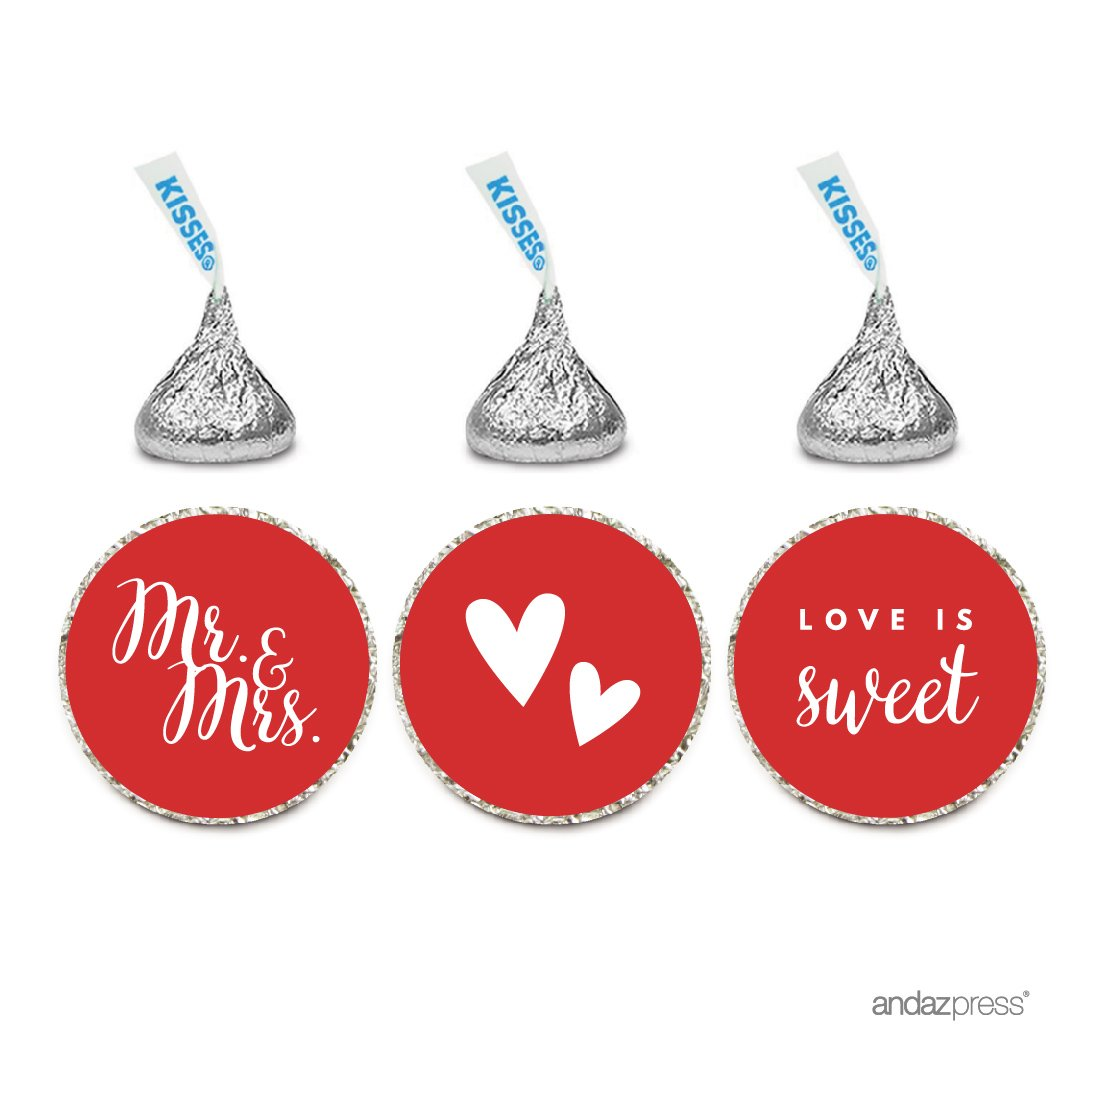 Andaz Press Chocolate Drop Labels Trio, Fits Hershey's Kisses, Wedding Mr. & Mrs, Red, 216-Pack, for Bridal Shower, Engagement Party Favors, Gifts, Stationery, Envelopes, Decor, Decorations